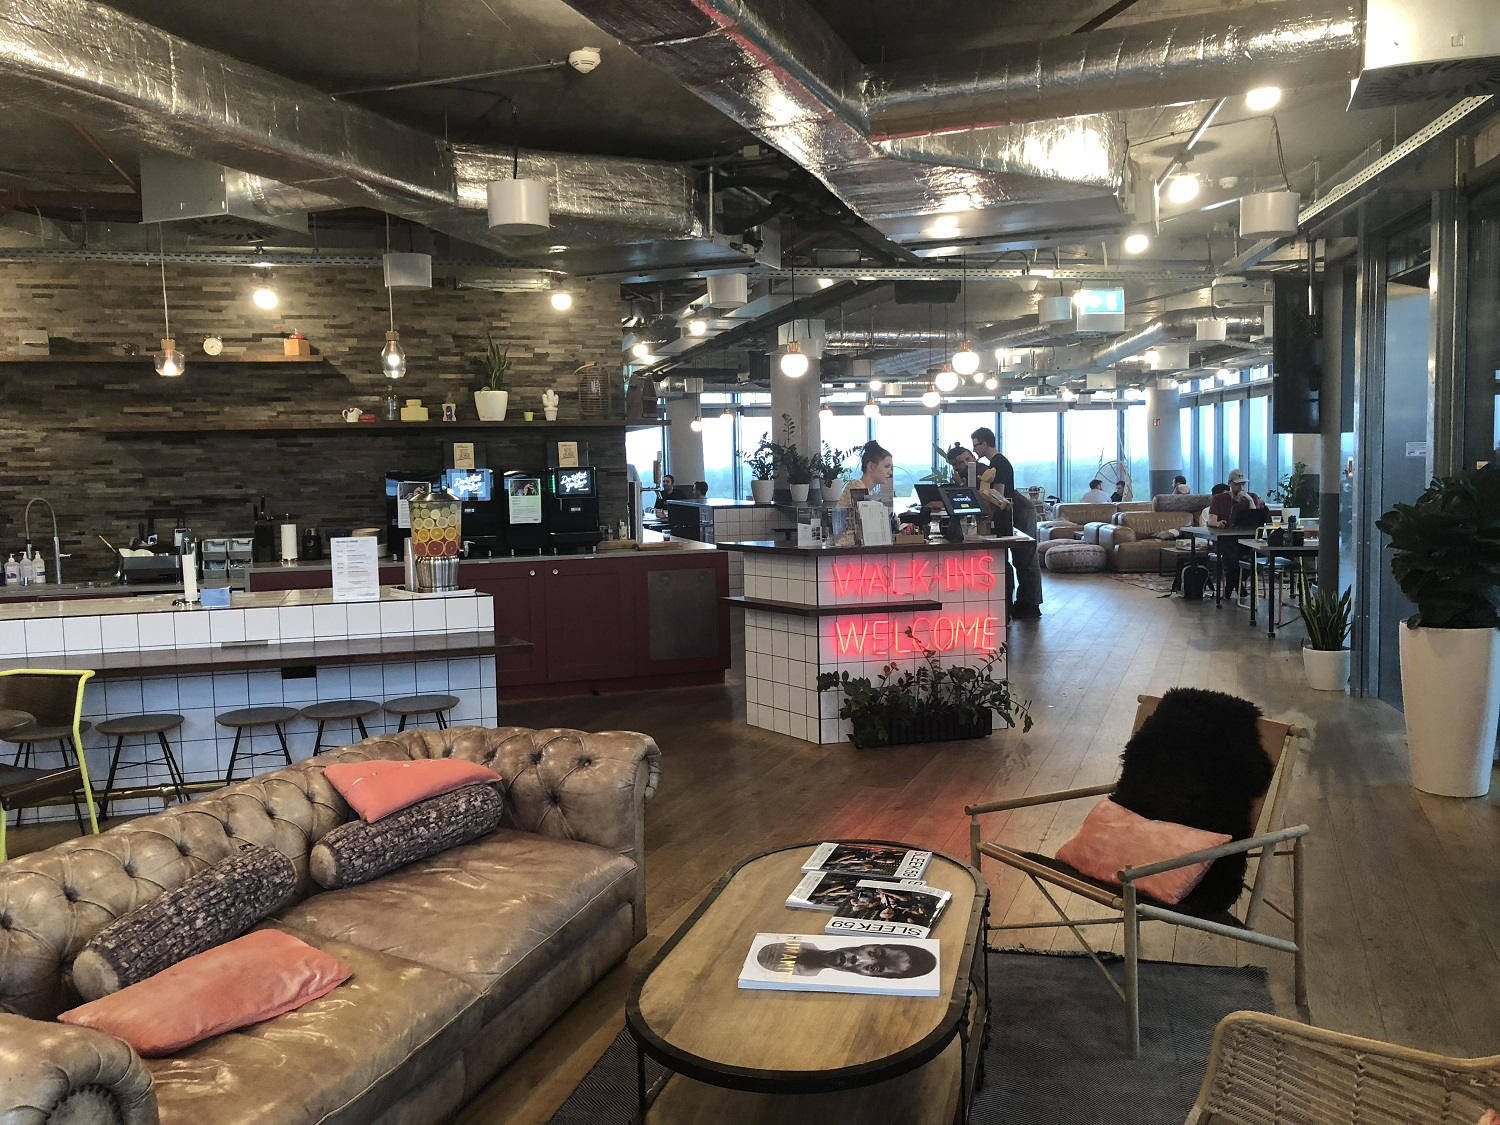 Walk-Ins Welcome im Coworking Space